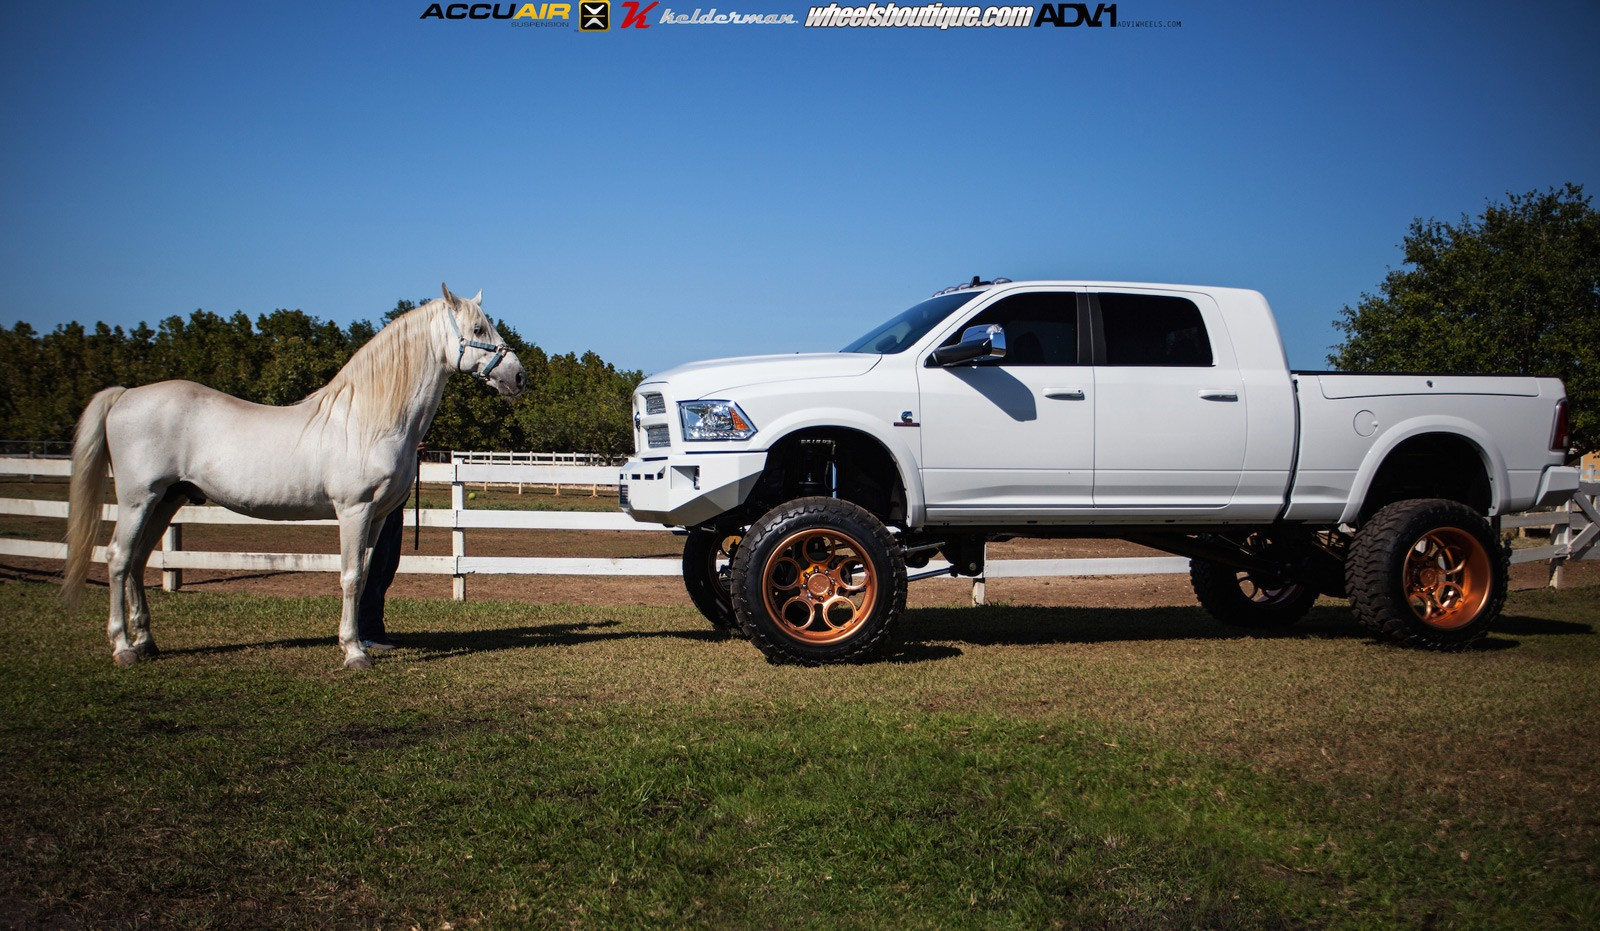 Lifted Ram On Rose Gold Wheels Meets A Horse Photo Gallery on Lifted Dodge Ram 2500